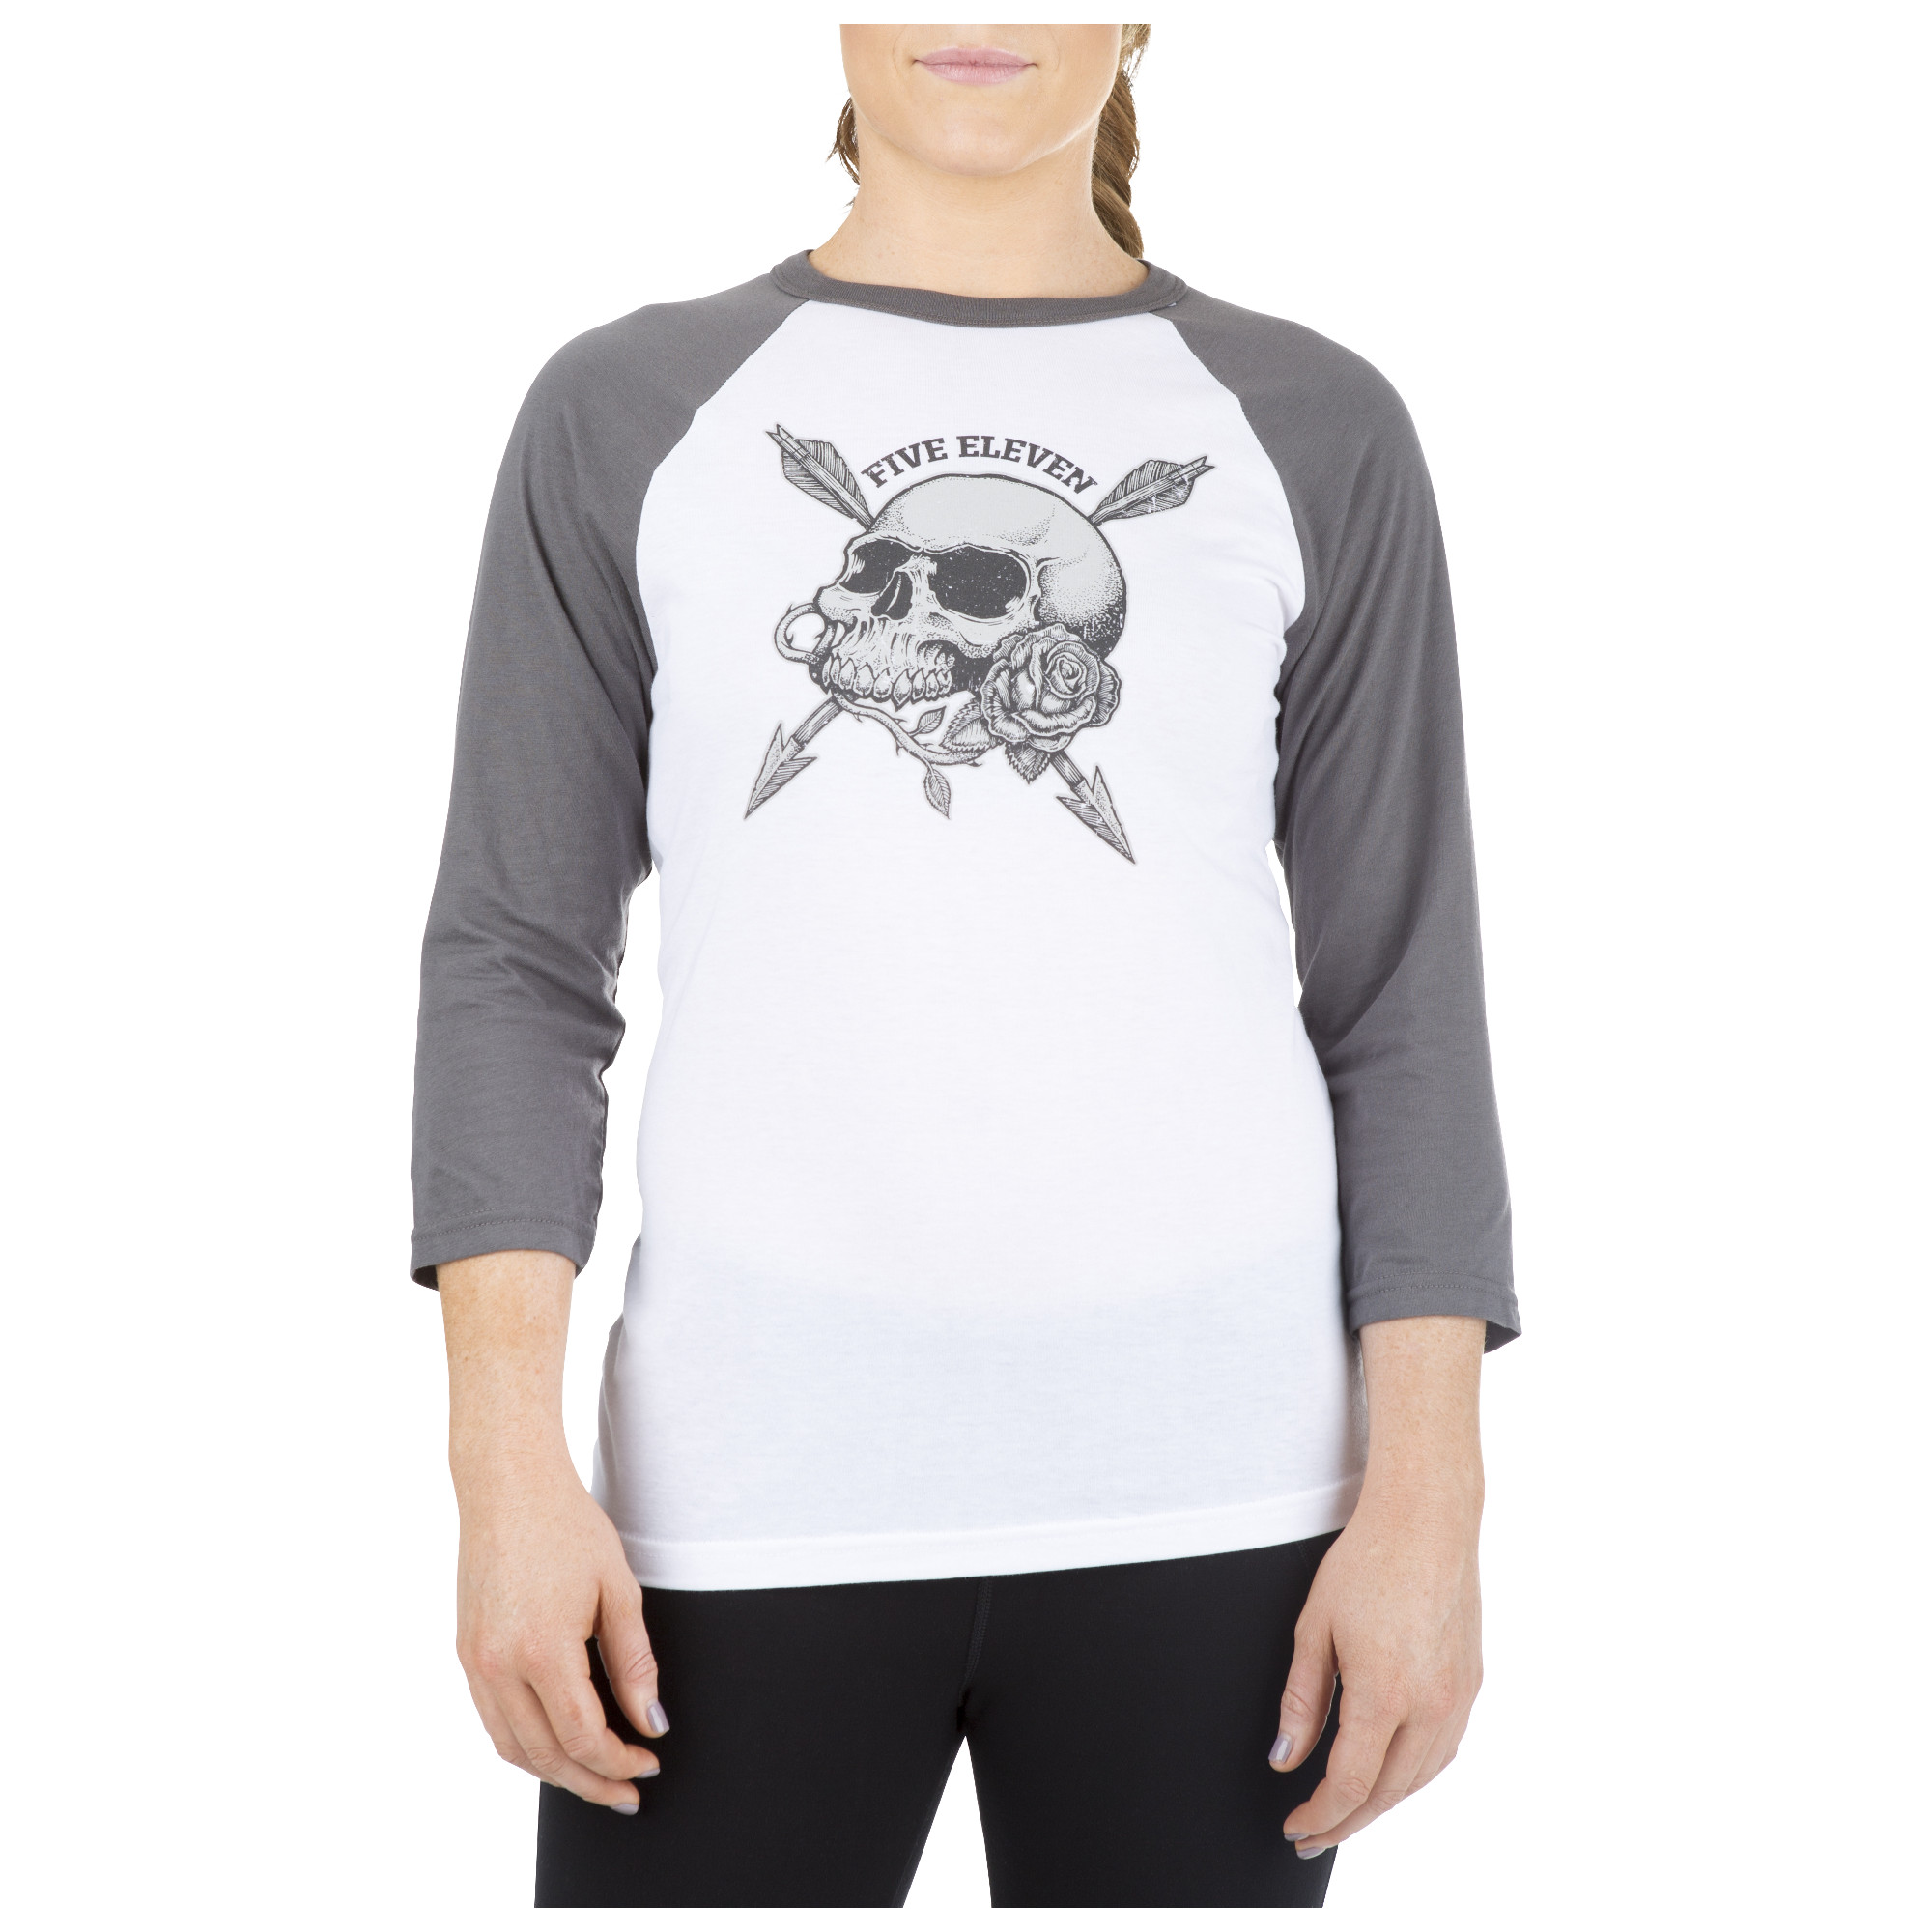 5.11 Tactical Women's War and Roses Baseball Tee (White)